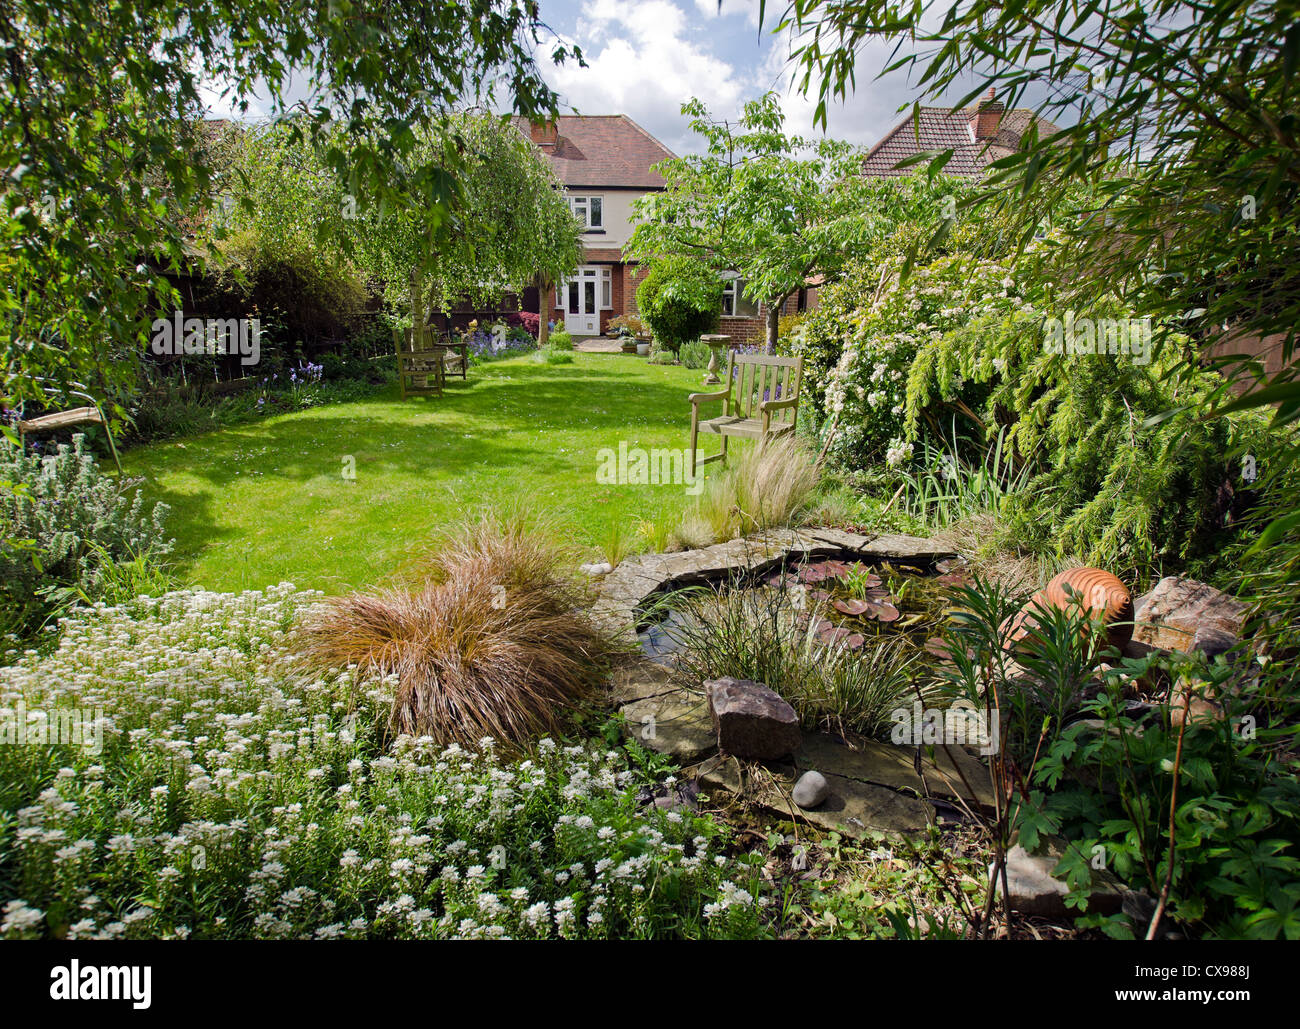 1930s House Stock Photos Amp 1930s House Stock Images Alamy